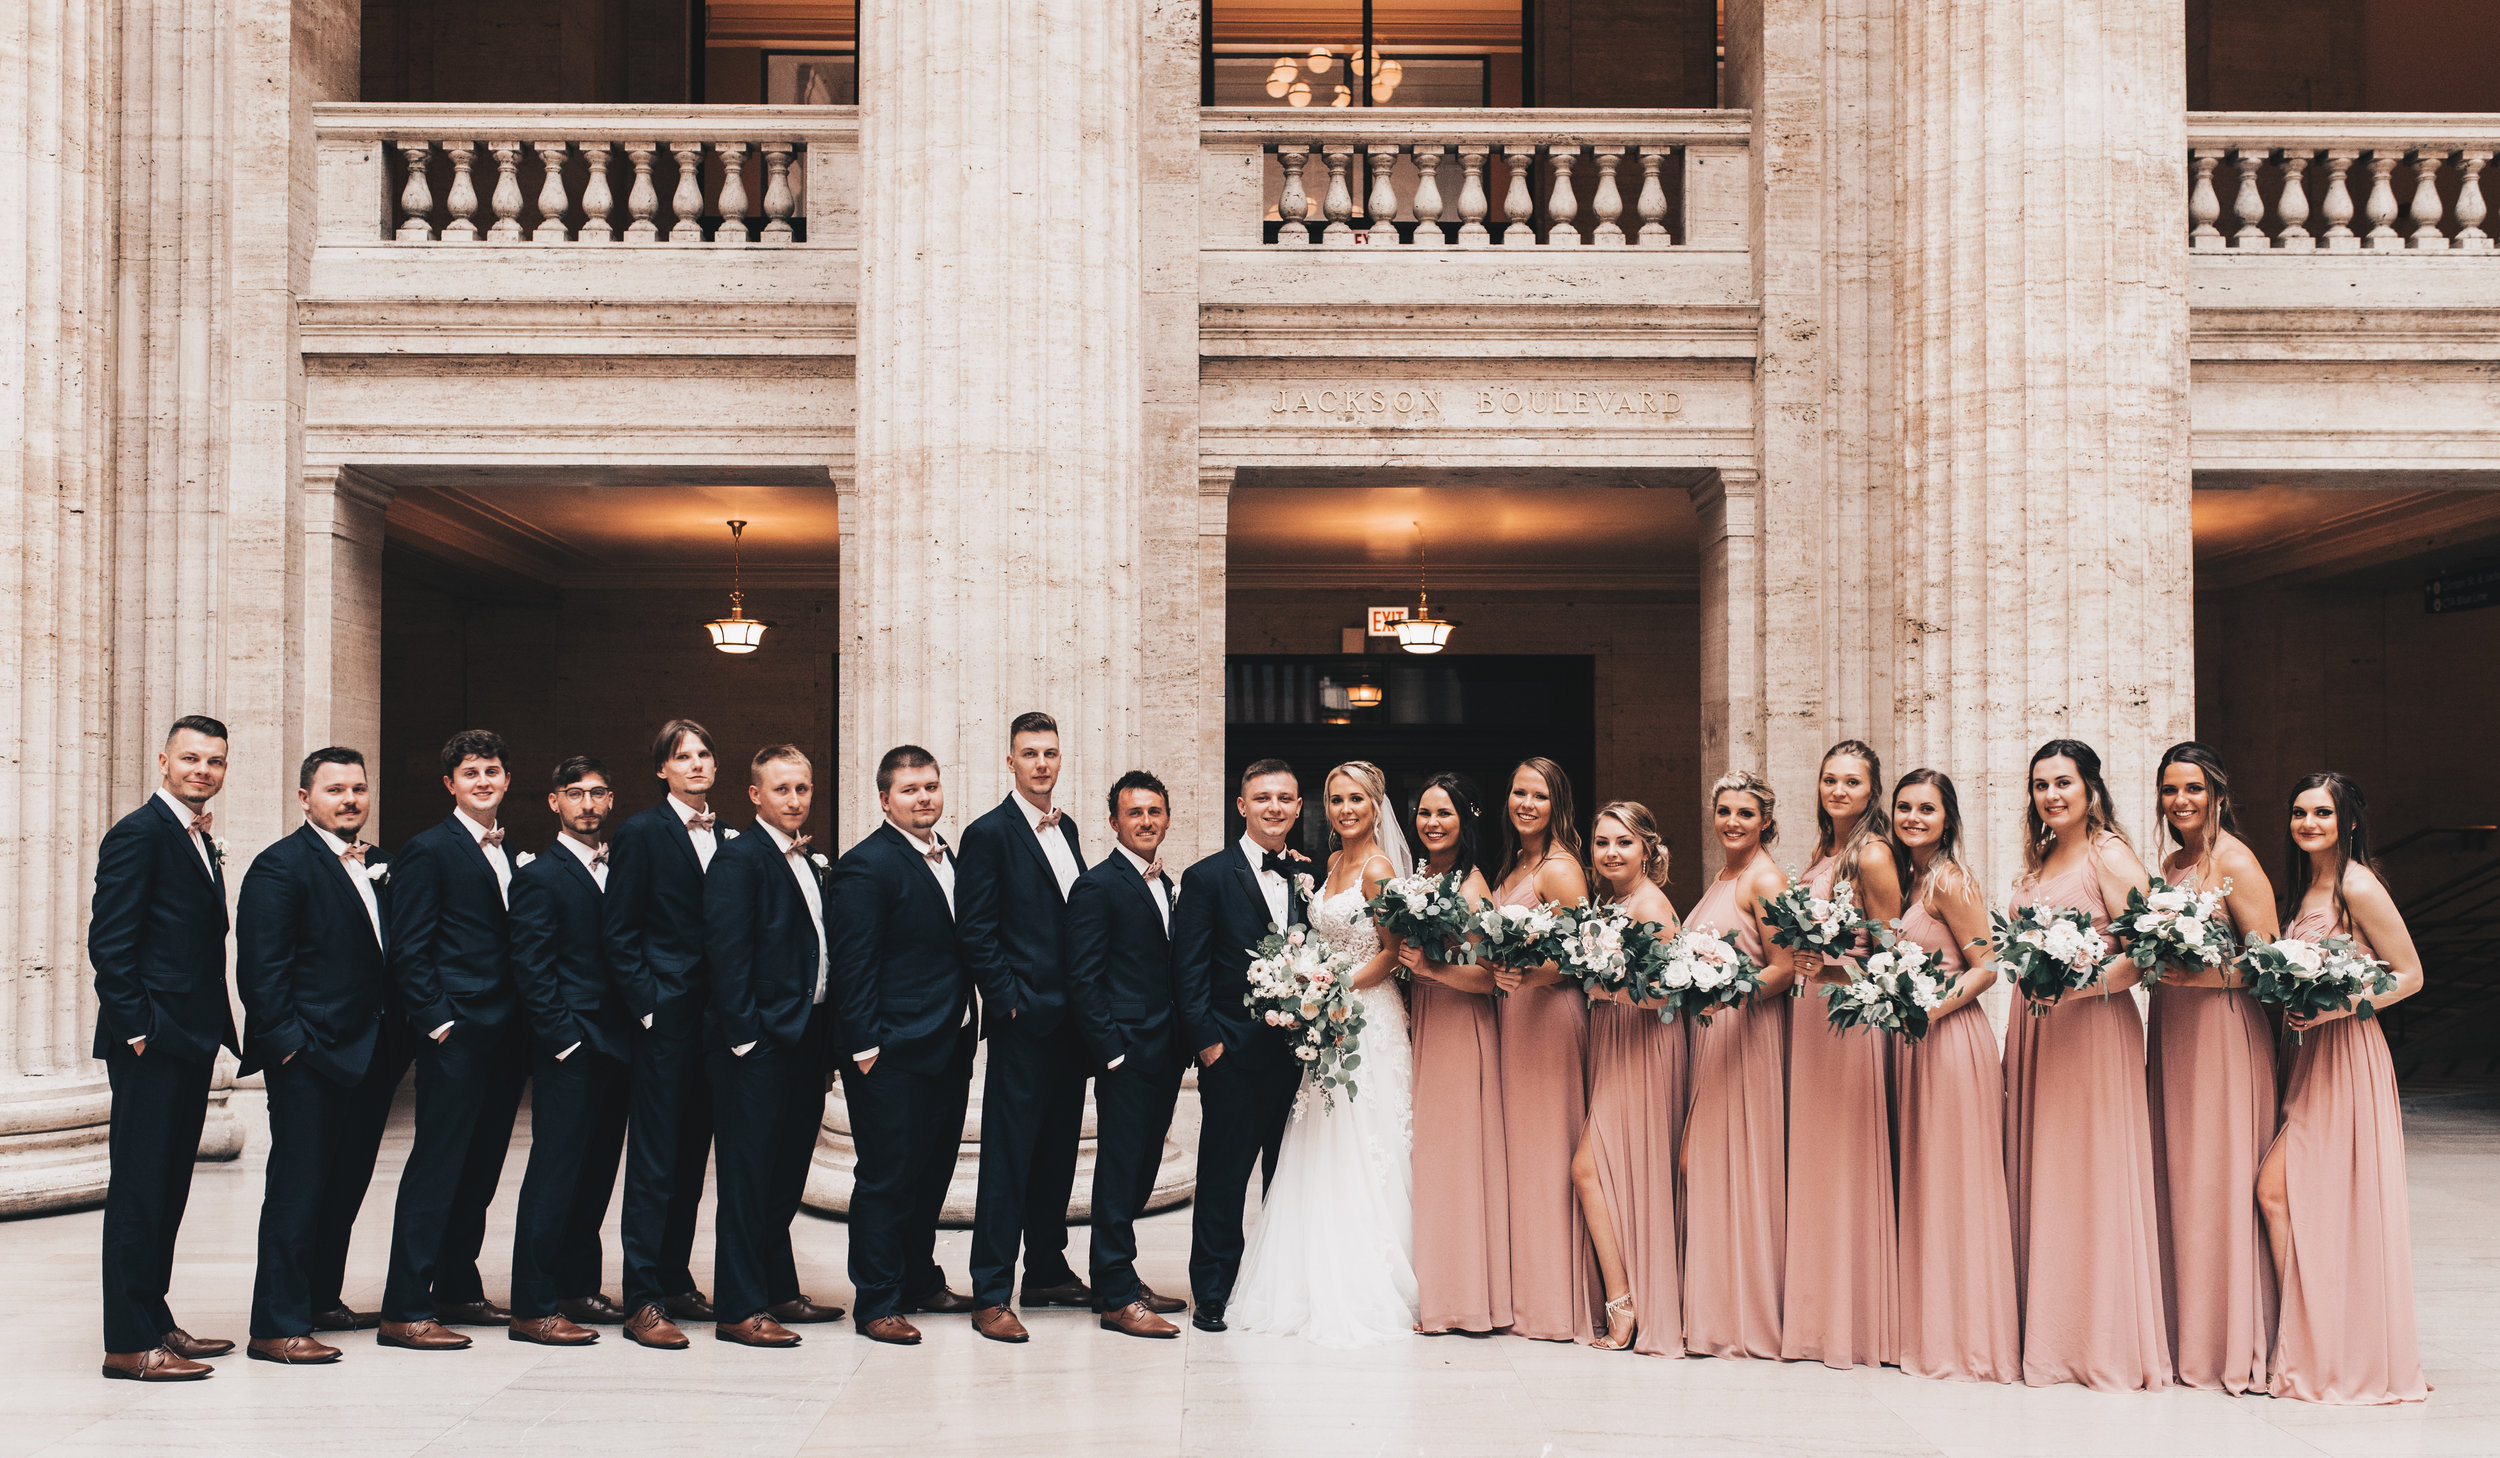 Chicago Wedding Photographer, City Wedding, Bride and Groom Photos, Illinois Wedding, Midwest Wedding, Union Station Wedding Photos